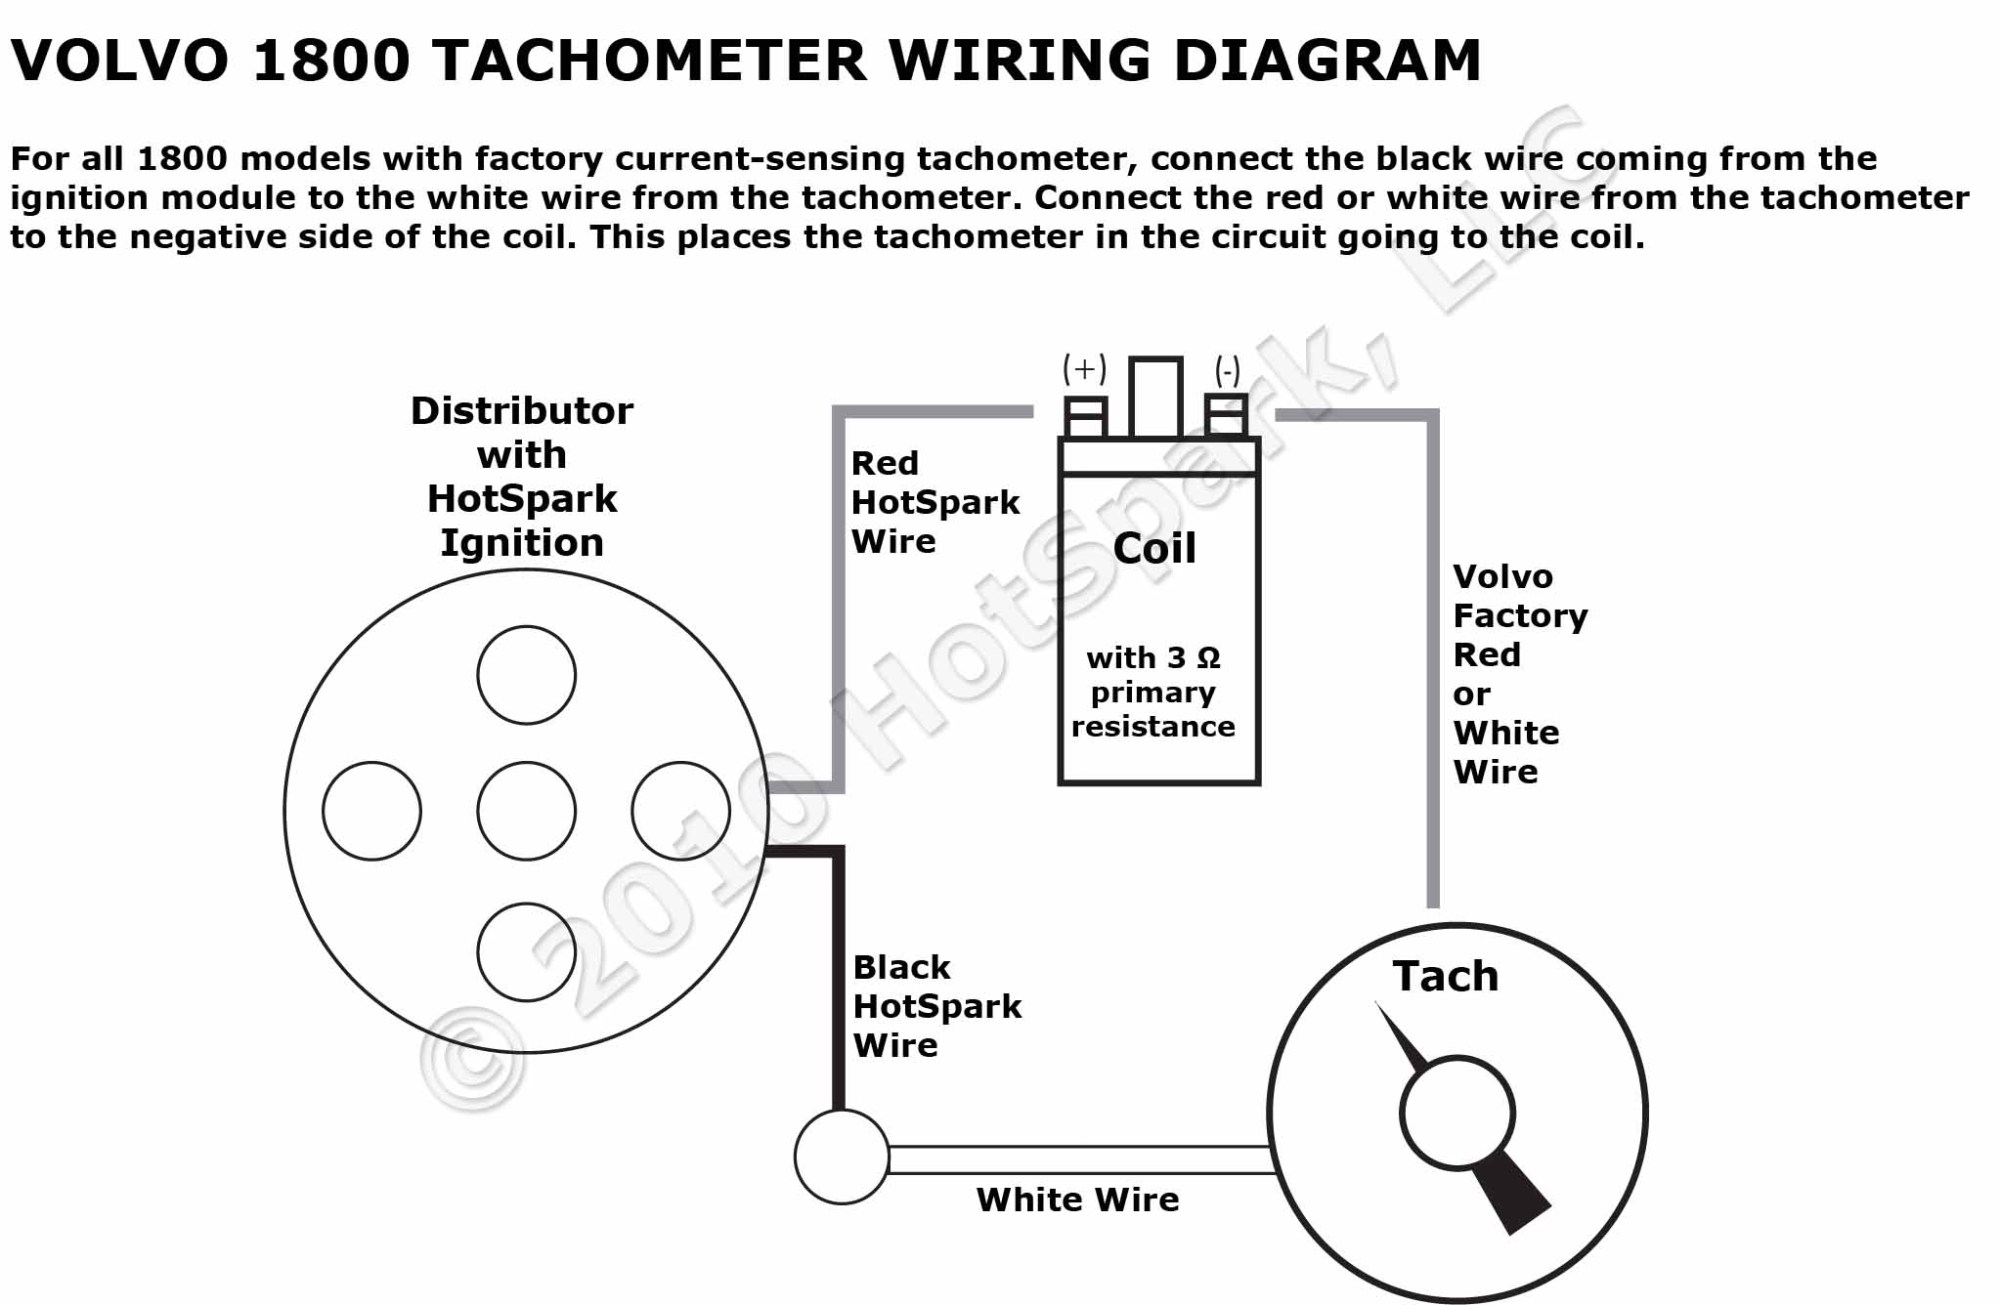 hight resolution of volvo 1800 tachometer wiring diagram with hotspark ignition 65 chevelle tach wiring diagram tach wiring diagram